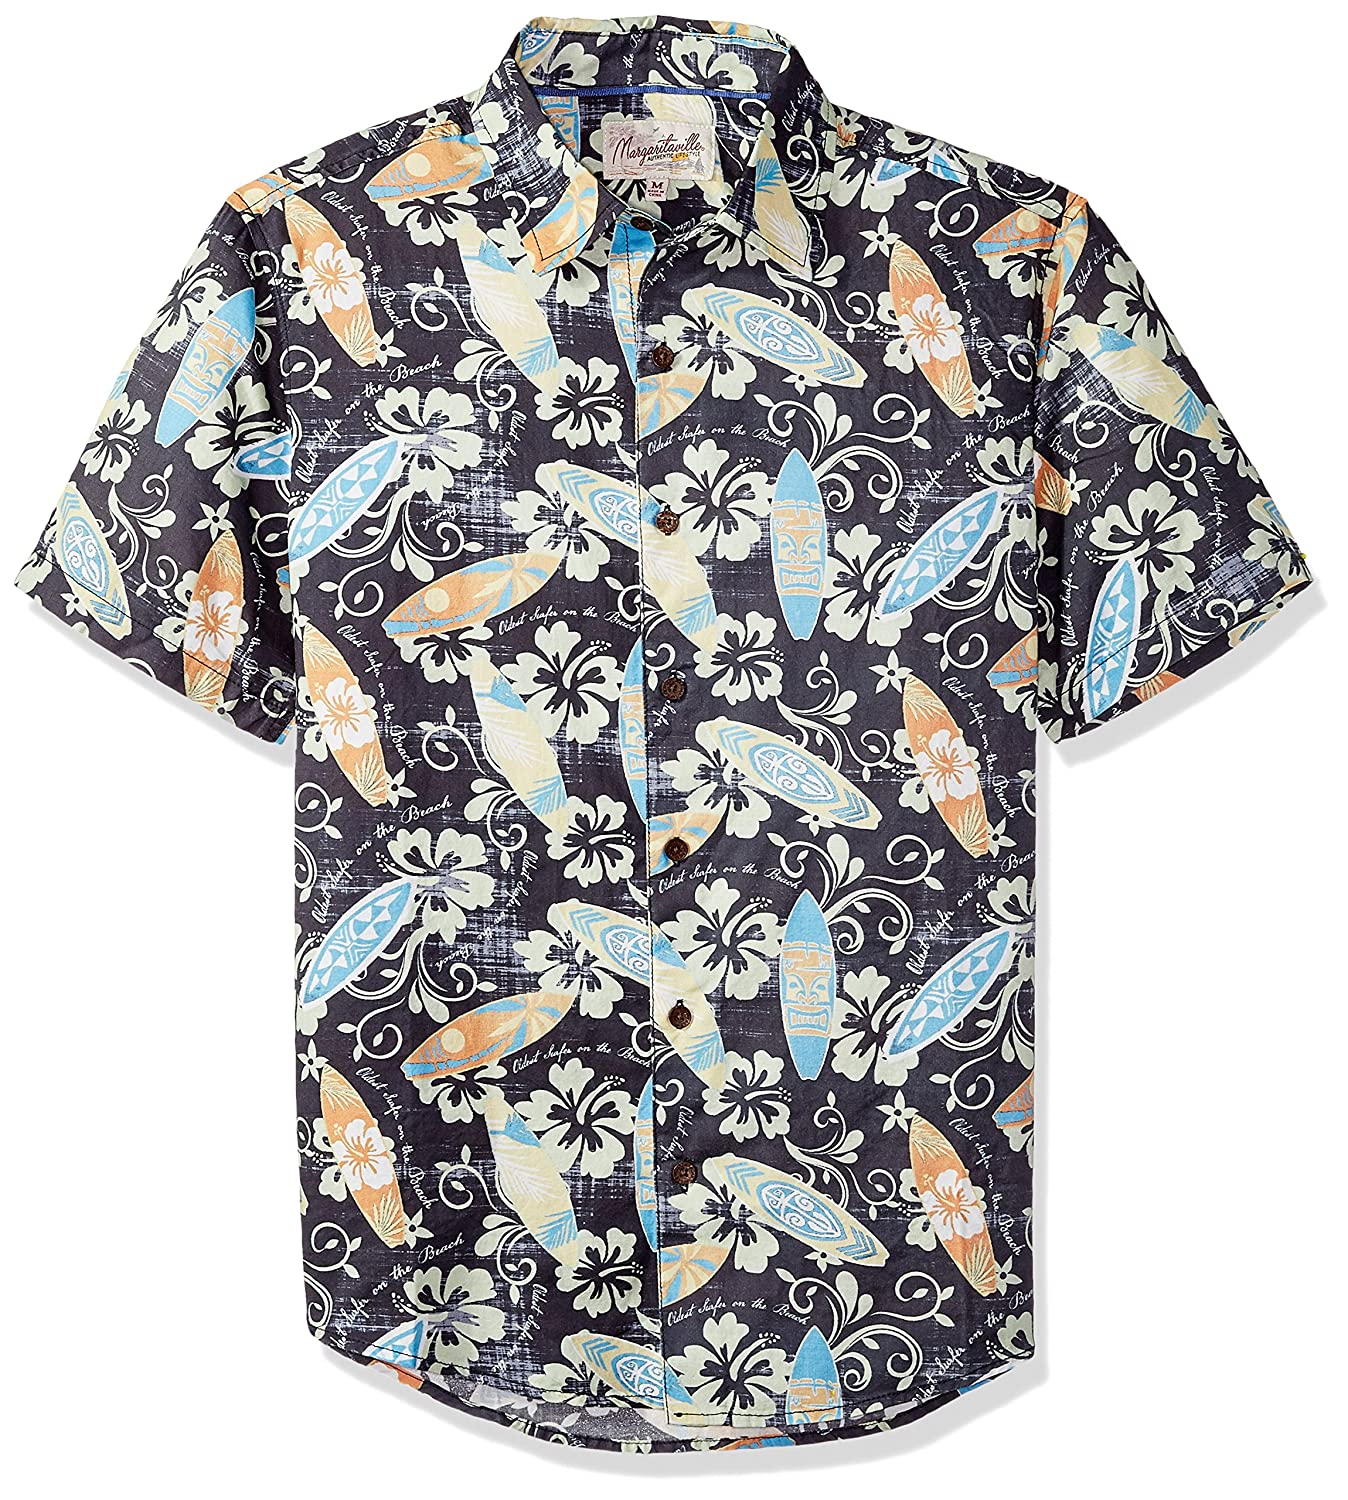 Margaritaville Men s Short Sleeve Paradise Print Cotton BBQ Shirt at Amazon Men s Clothing store